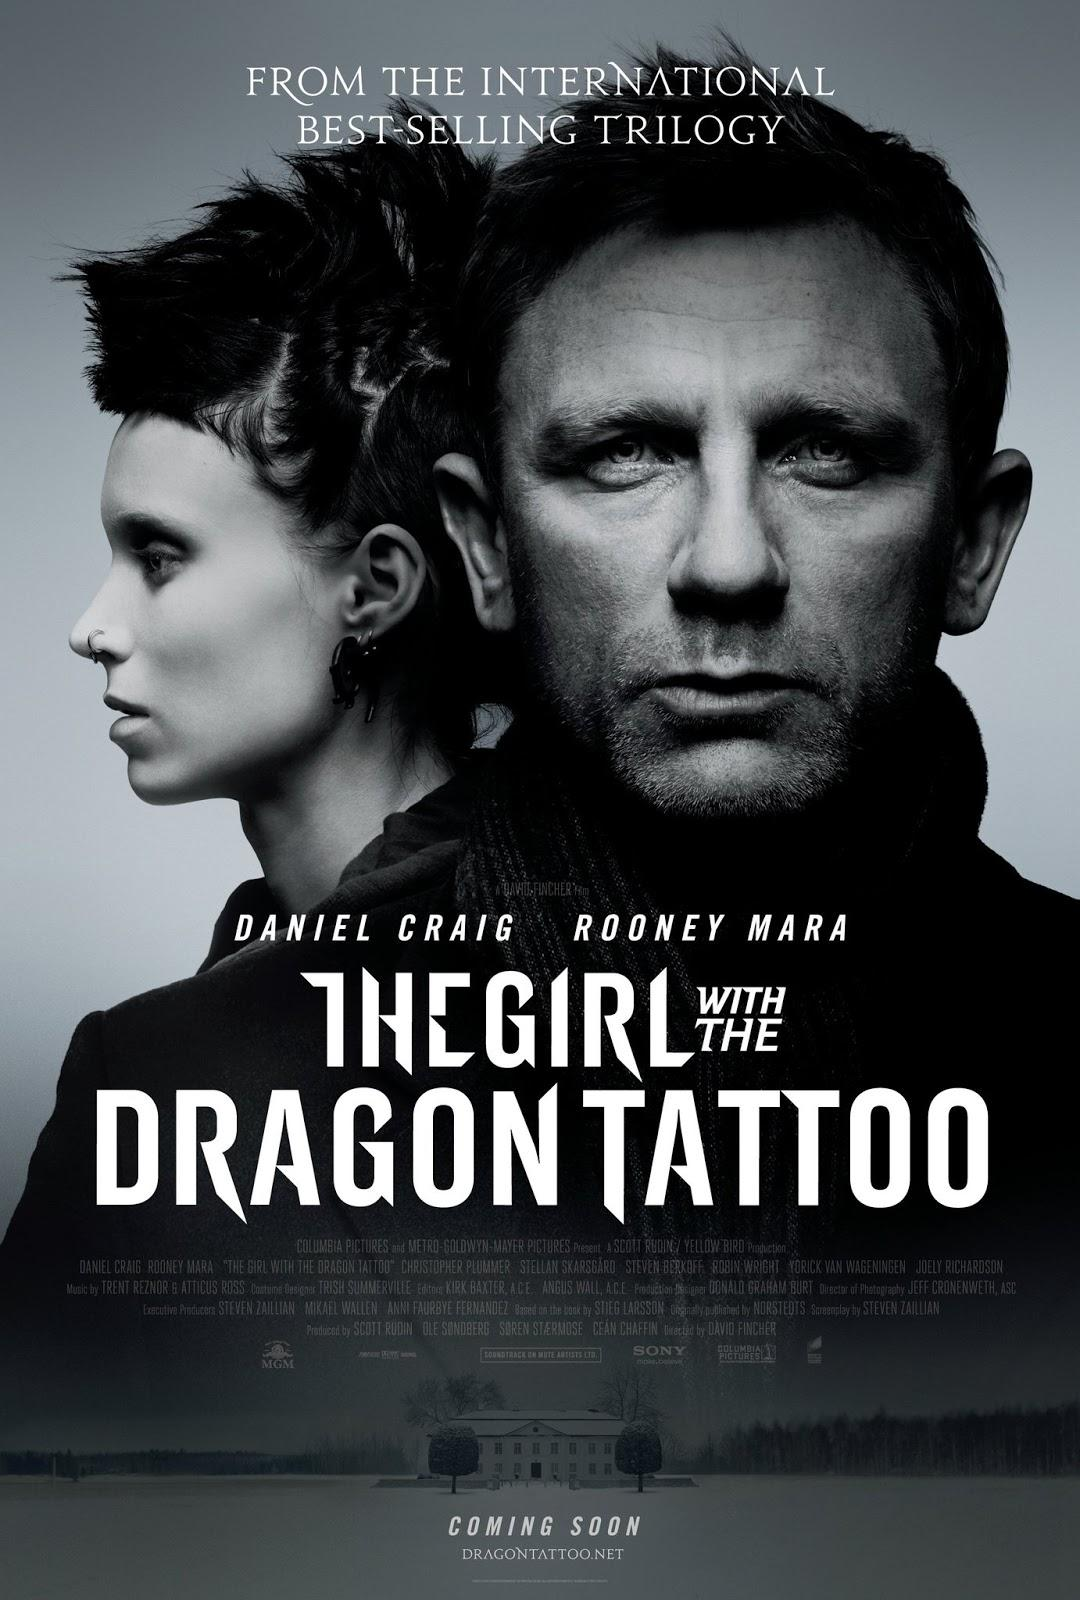 Behind the Girl with the Dragon Tattoo